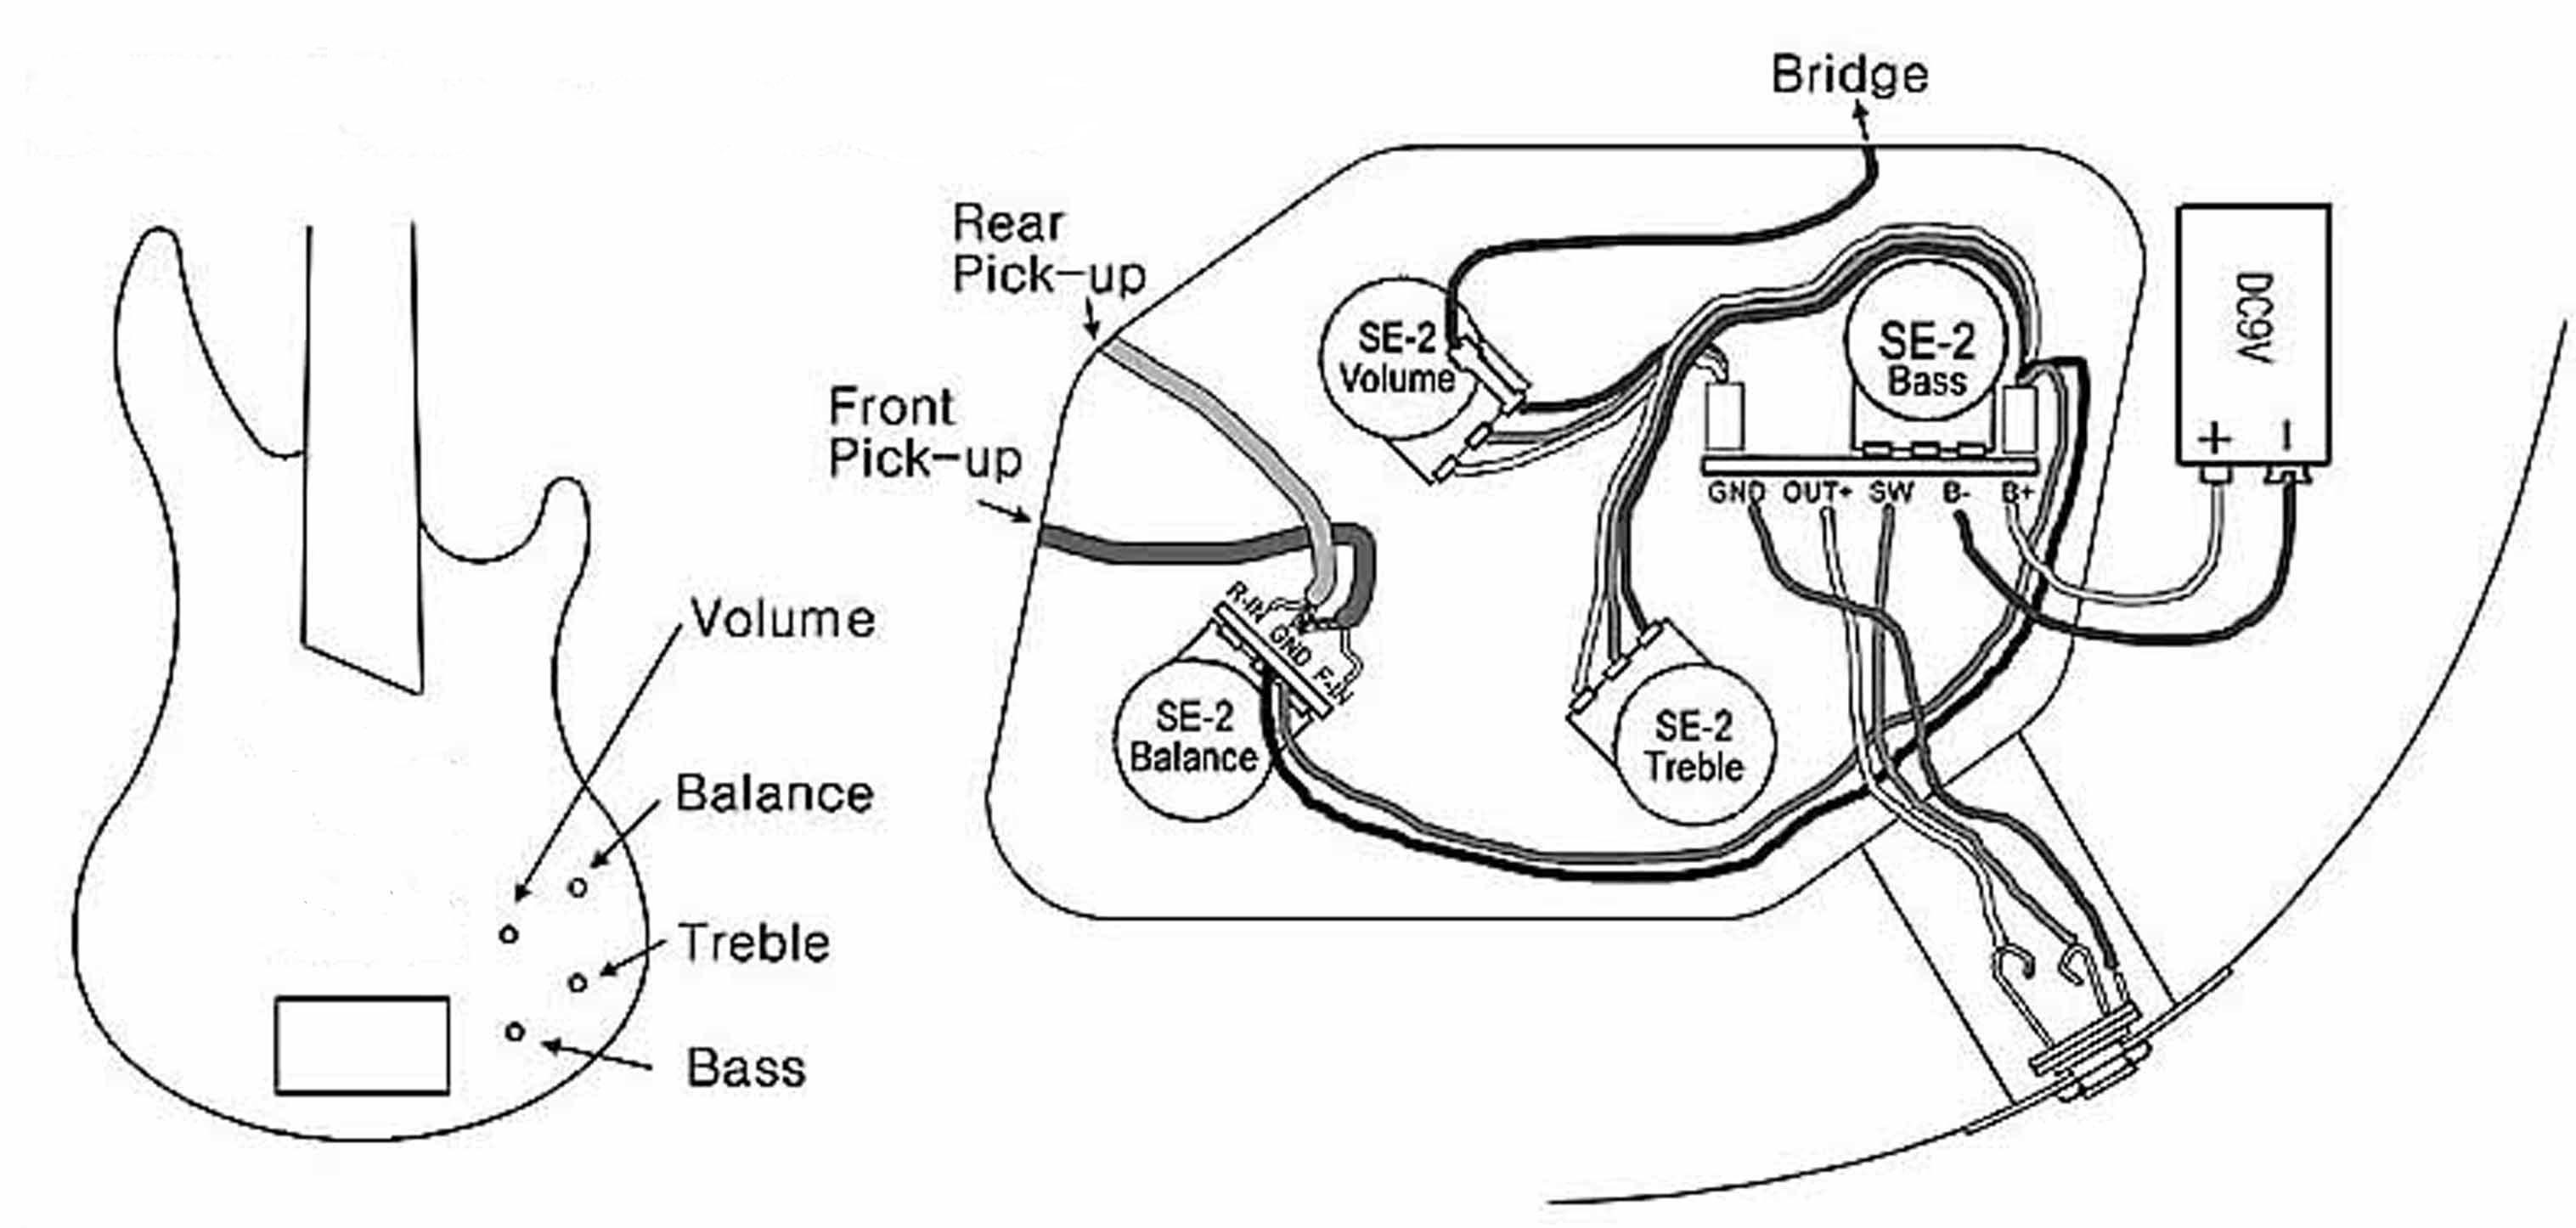 Wiring Diagram For 6 Strings Bass Guitar readingratnet